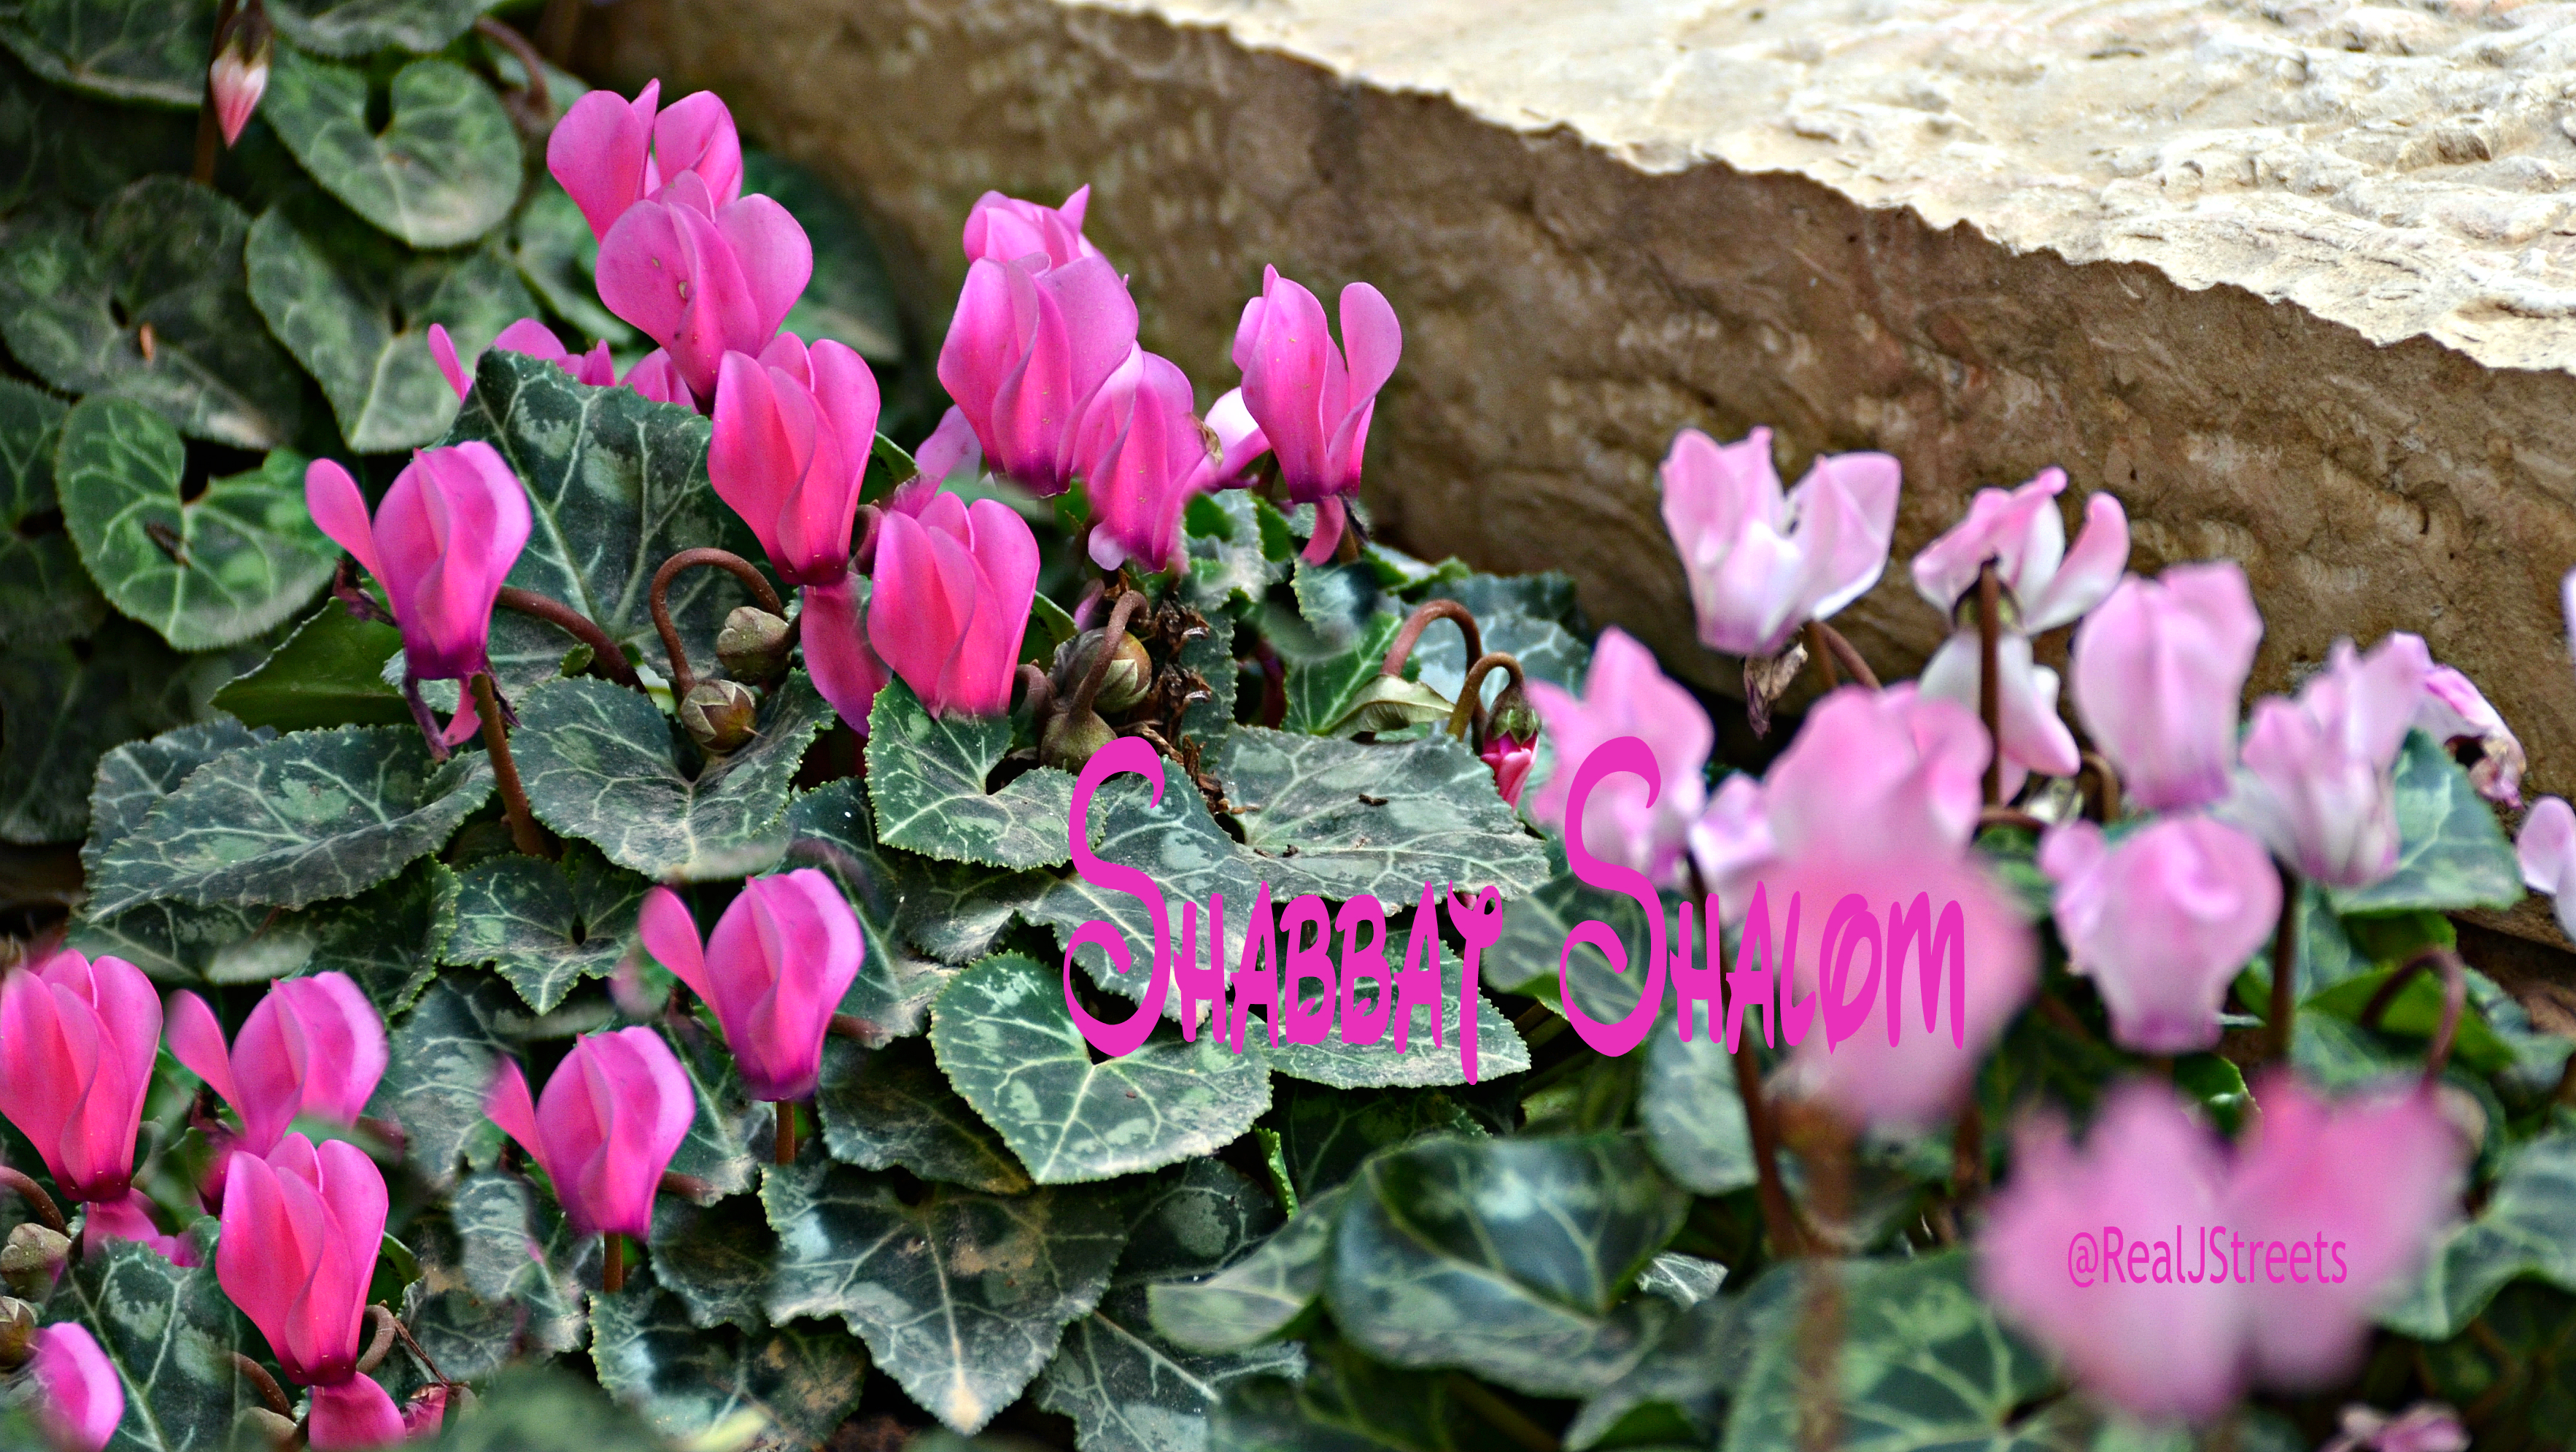 Shabbat shalom sign